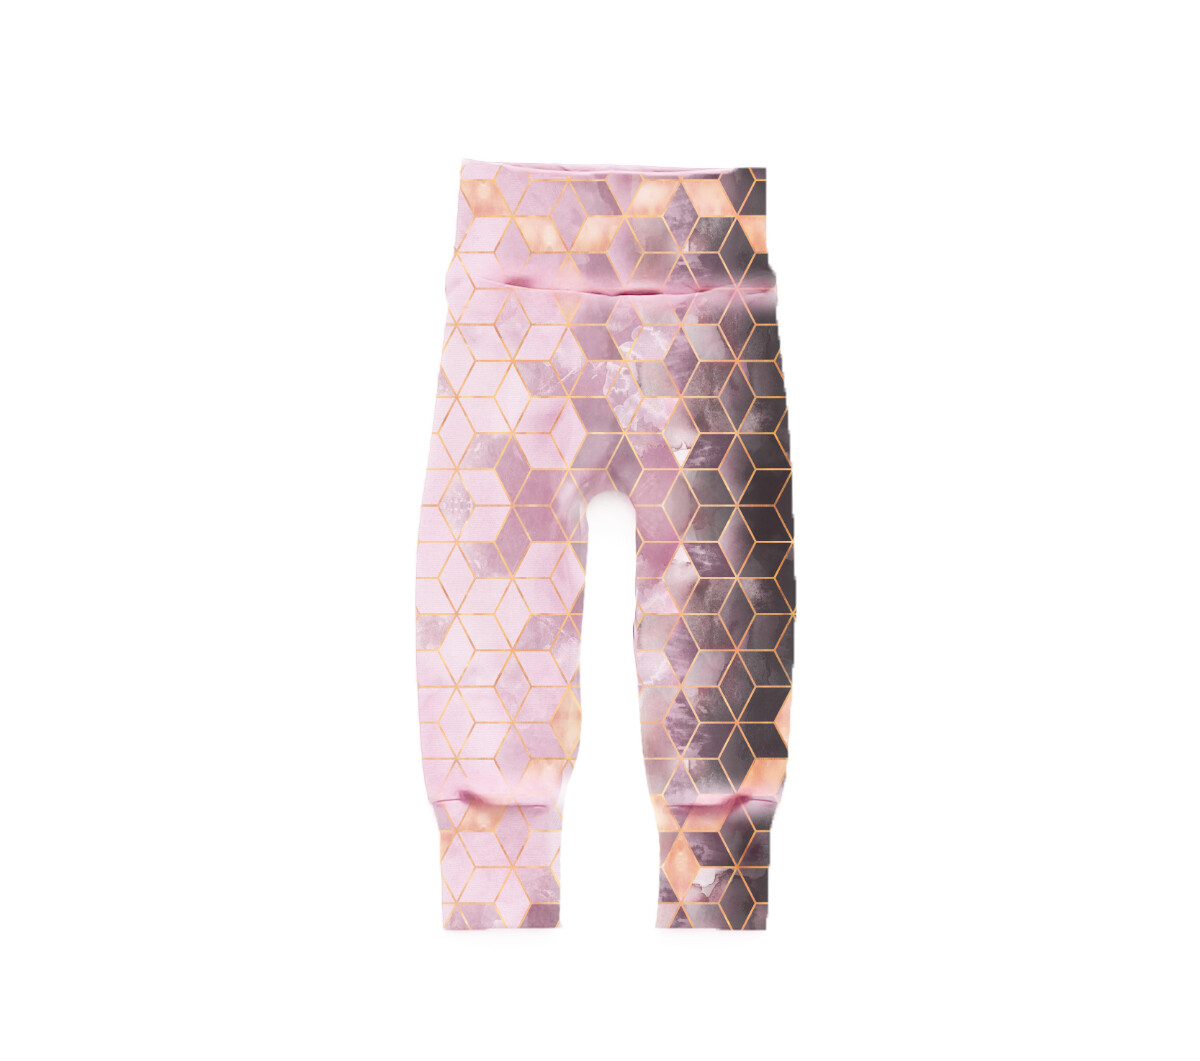 Little Sprout Pants™ in Pink Cubes | Grow With Me Leggings - Stretch